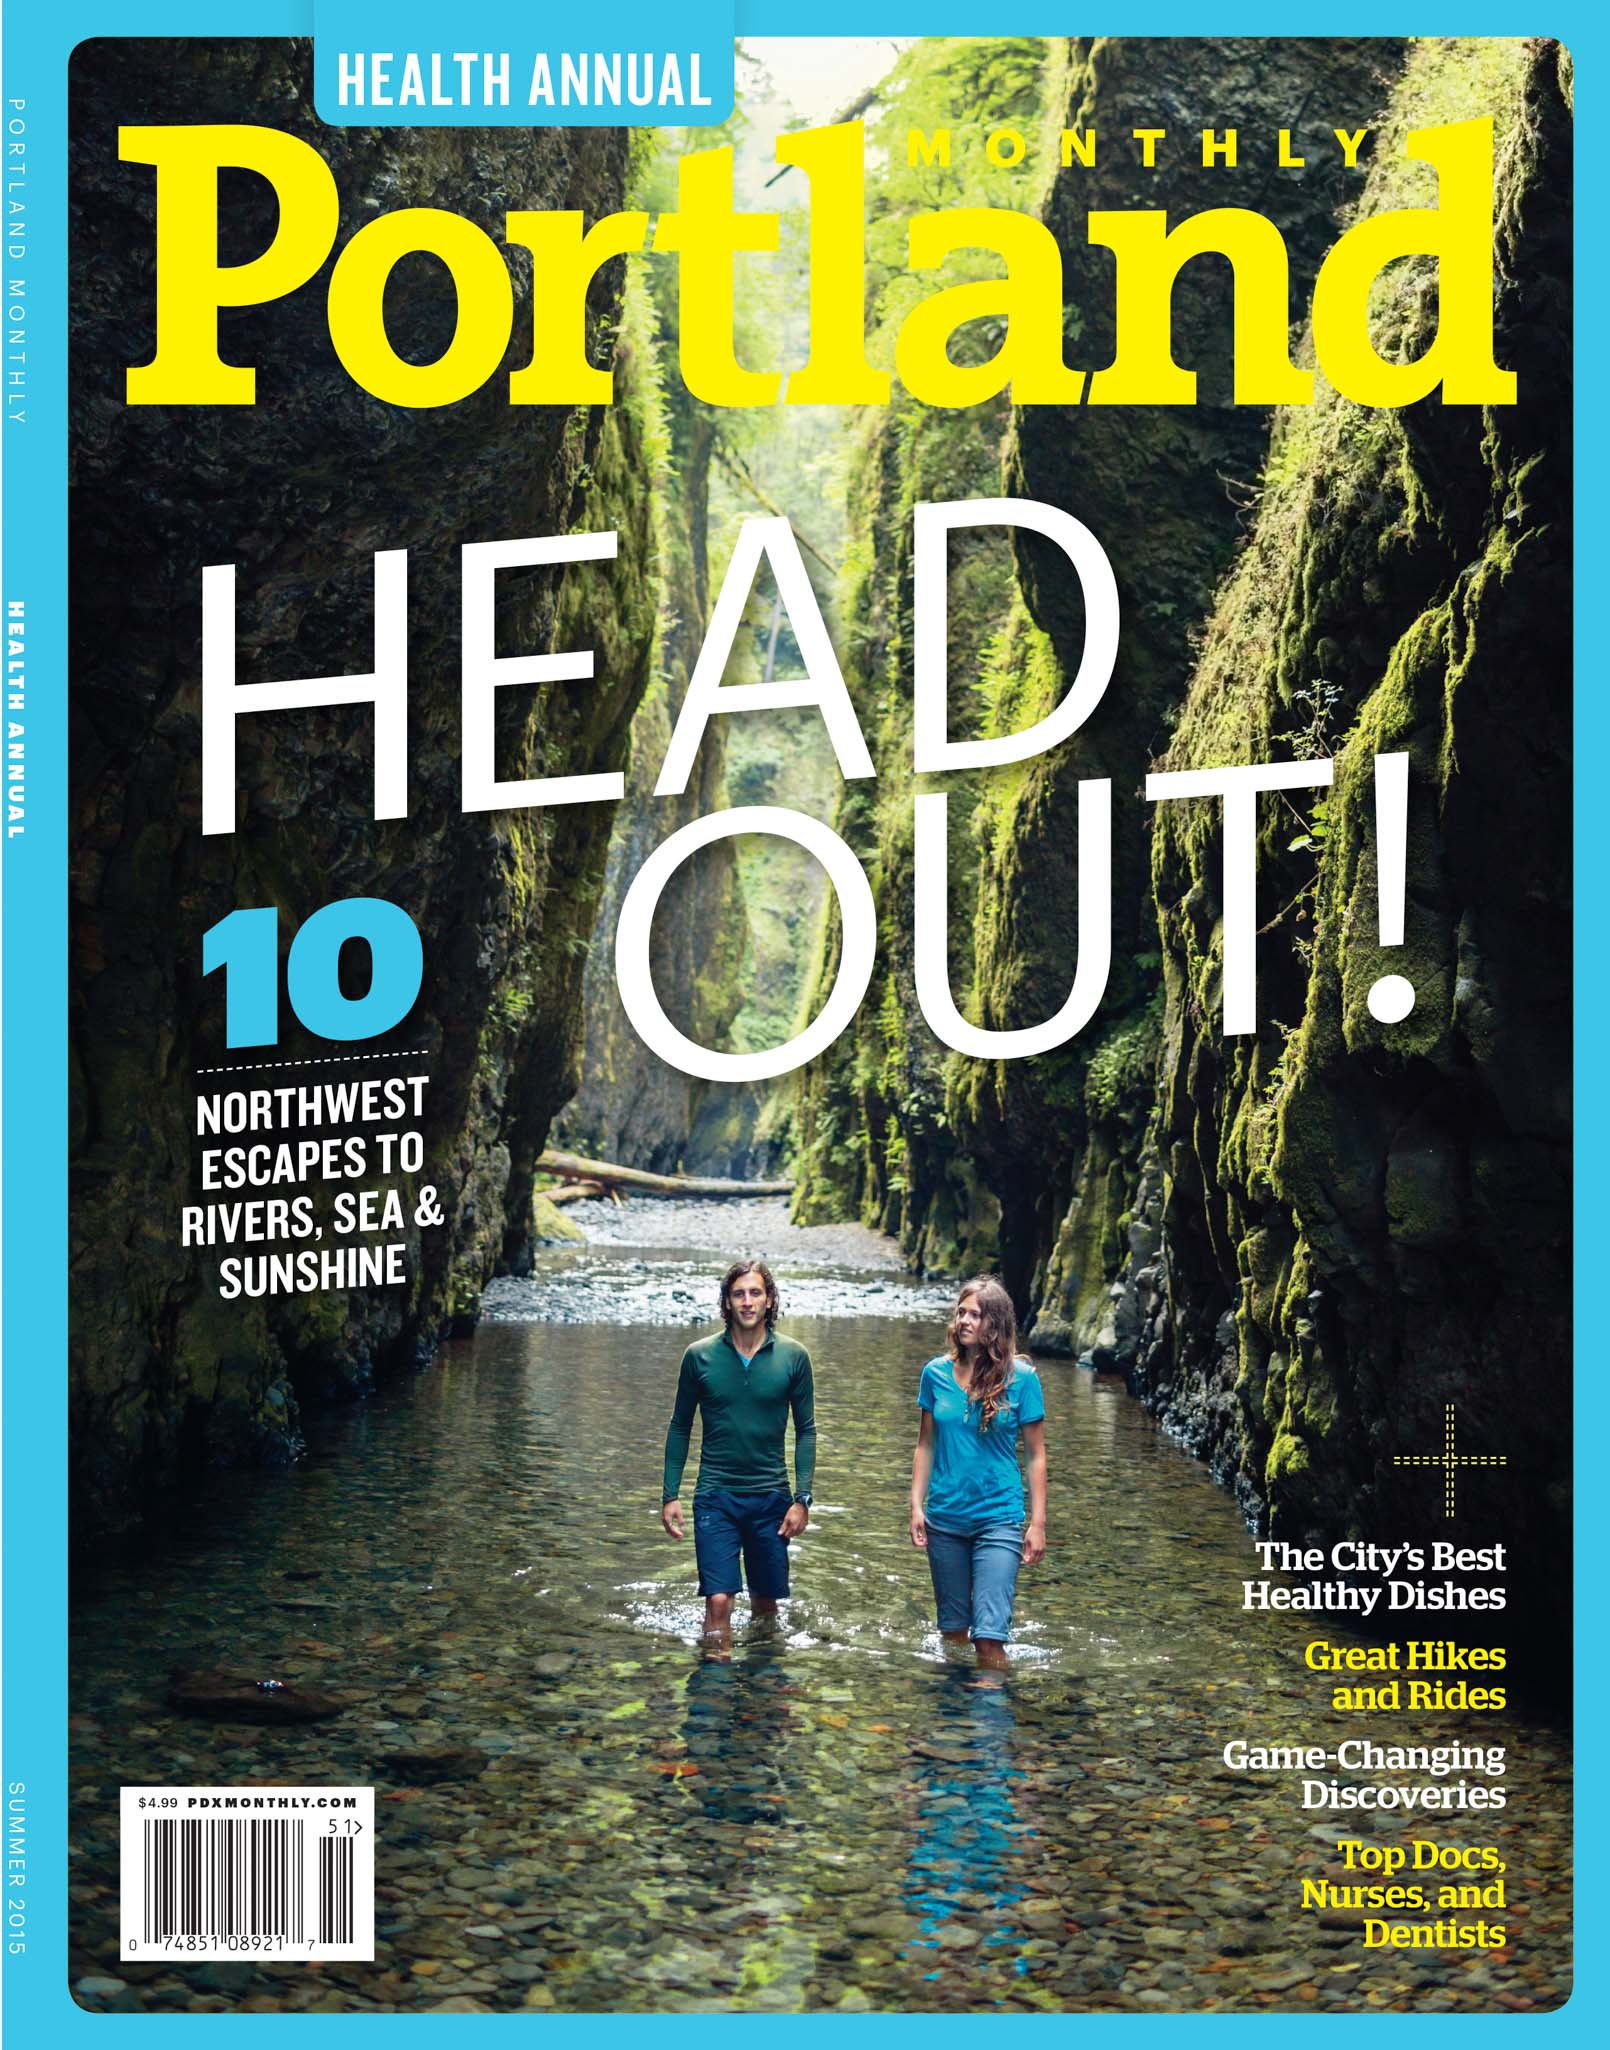 Two people wading through Oneonta Gorge